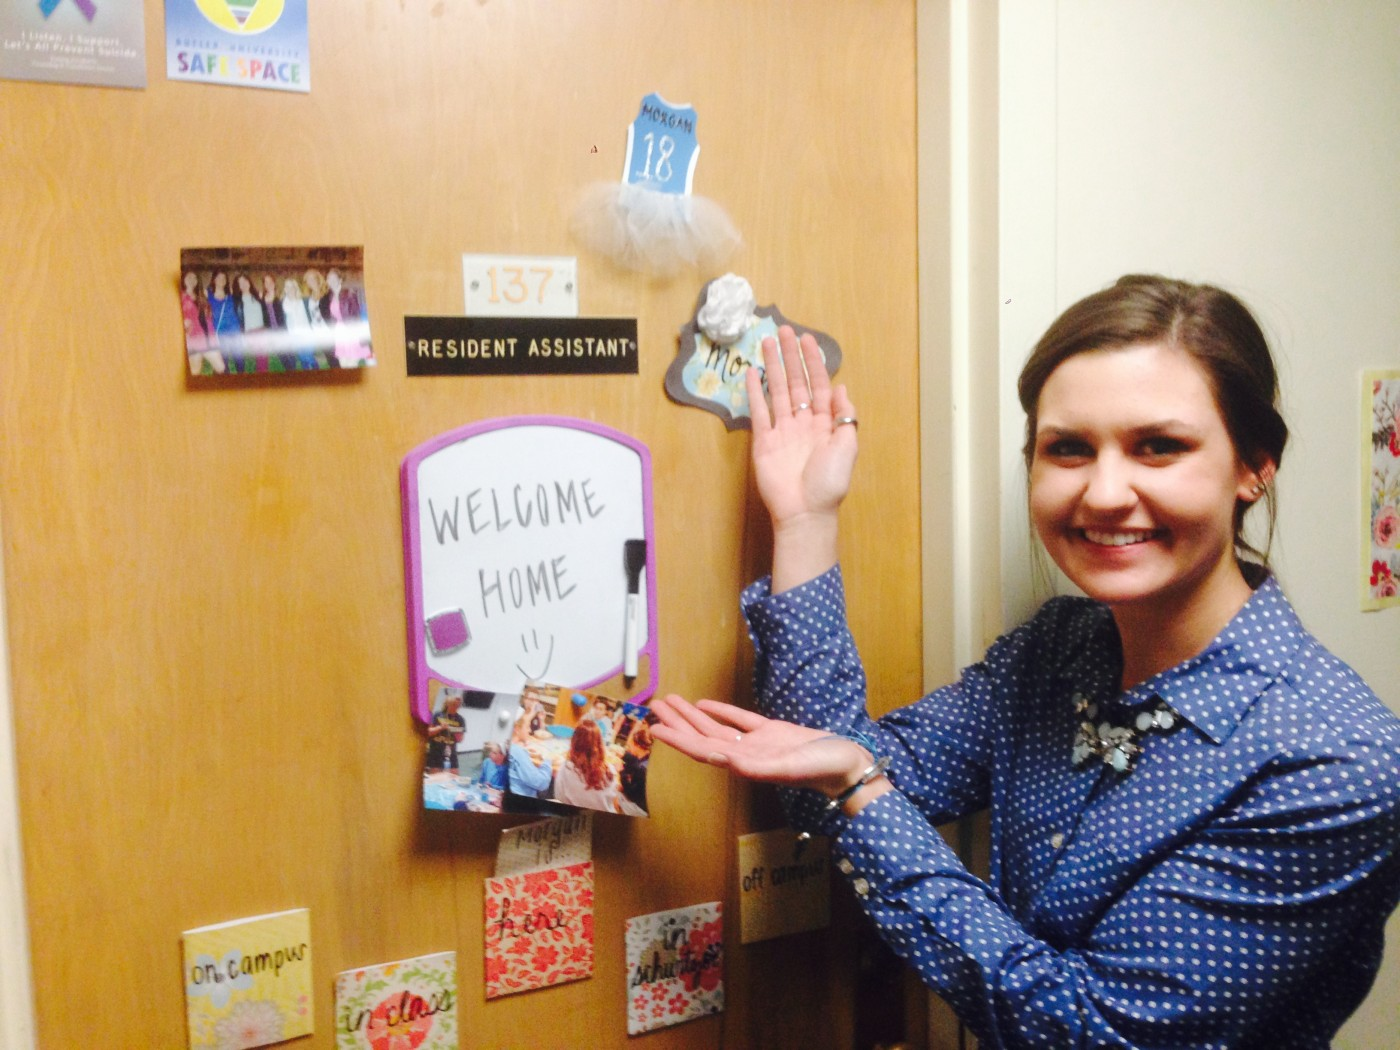 8 Things Your RA Wishes They Could Tell You